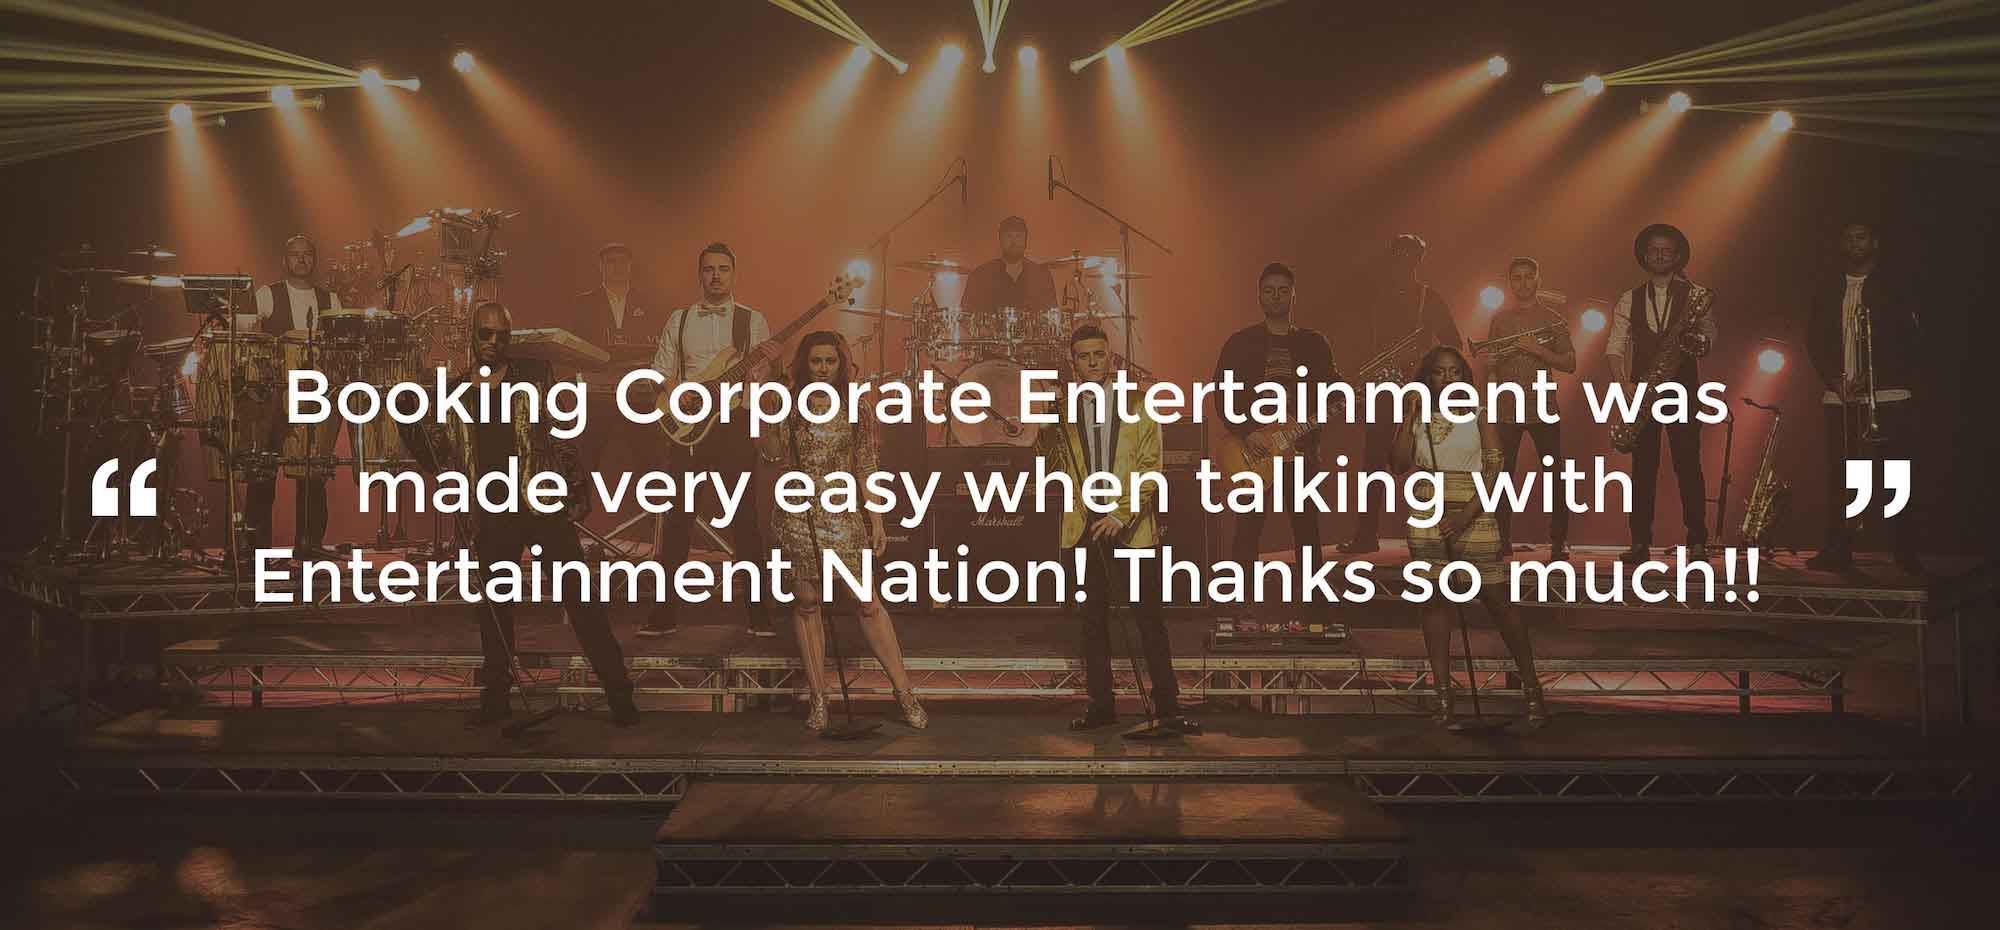 Client Review of Corporate Entertainment North Humberside